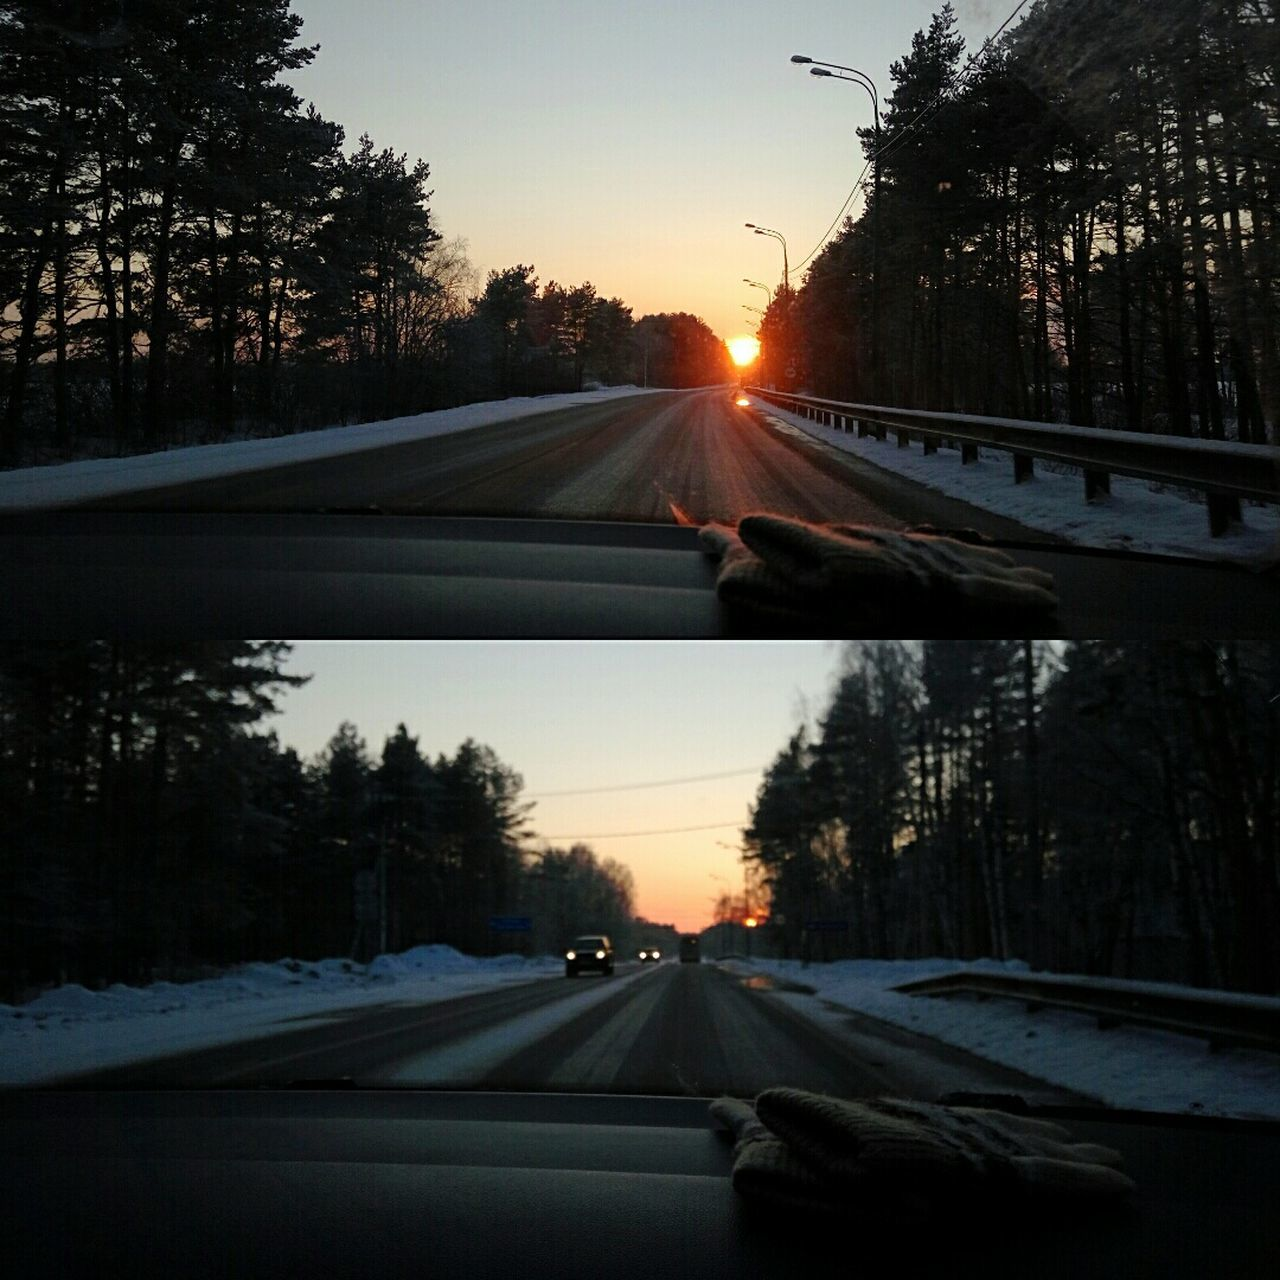 transportation, road, car, the way forward, sunset, windshield, tree, land vehicle, car point of view, diminishing perspective, mode of transport, sun, driving, highway, car interior, winter, no people, silhouette, road trip, nature, motion, cold temperature, snow, outdoors, sky, day